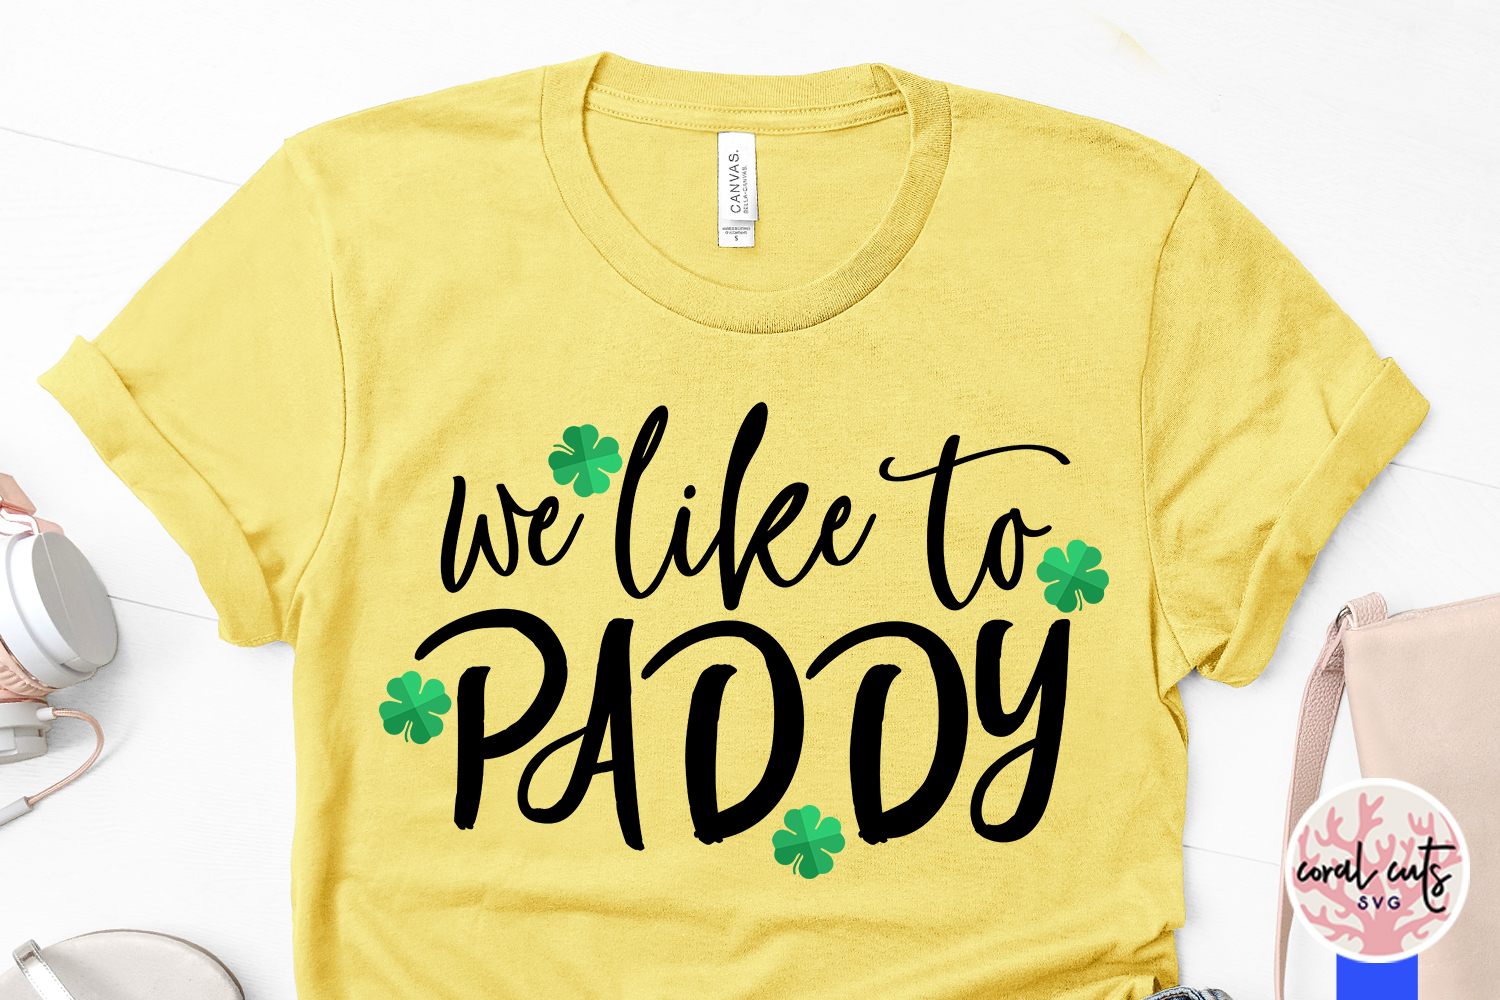 We like to paddy - St. Patrick's Day SVG EPS DXF PNG example image 3